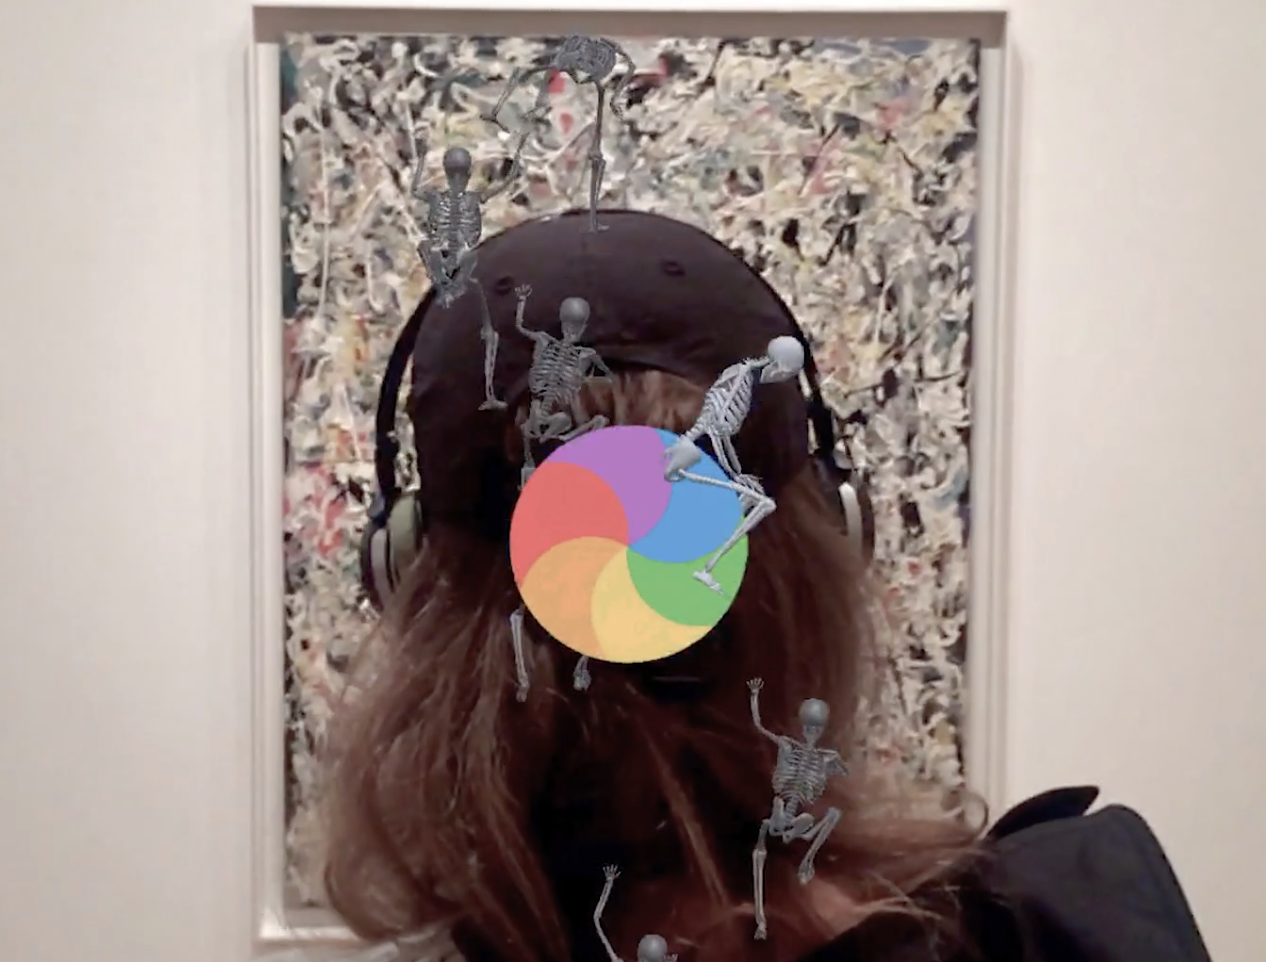 Future Art - Hello, we're from the internet